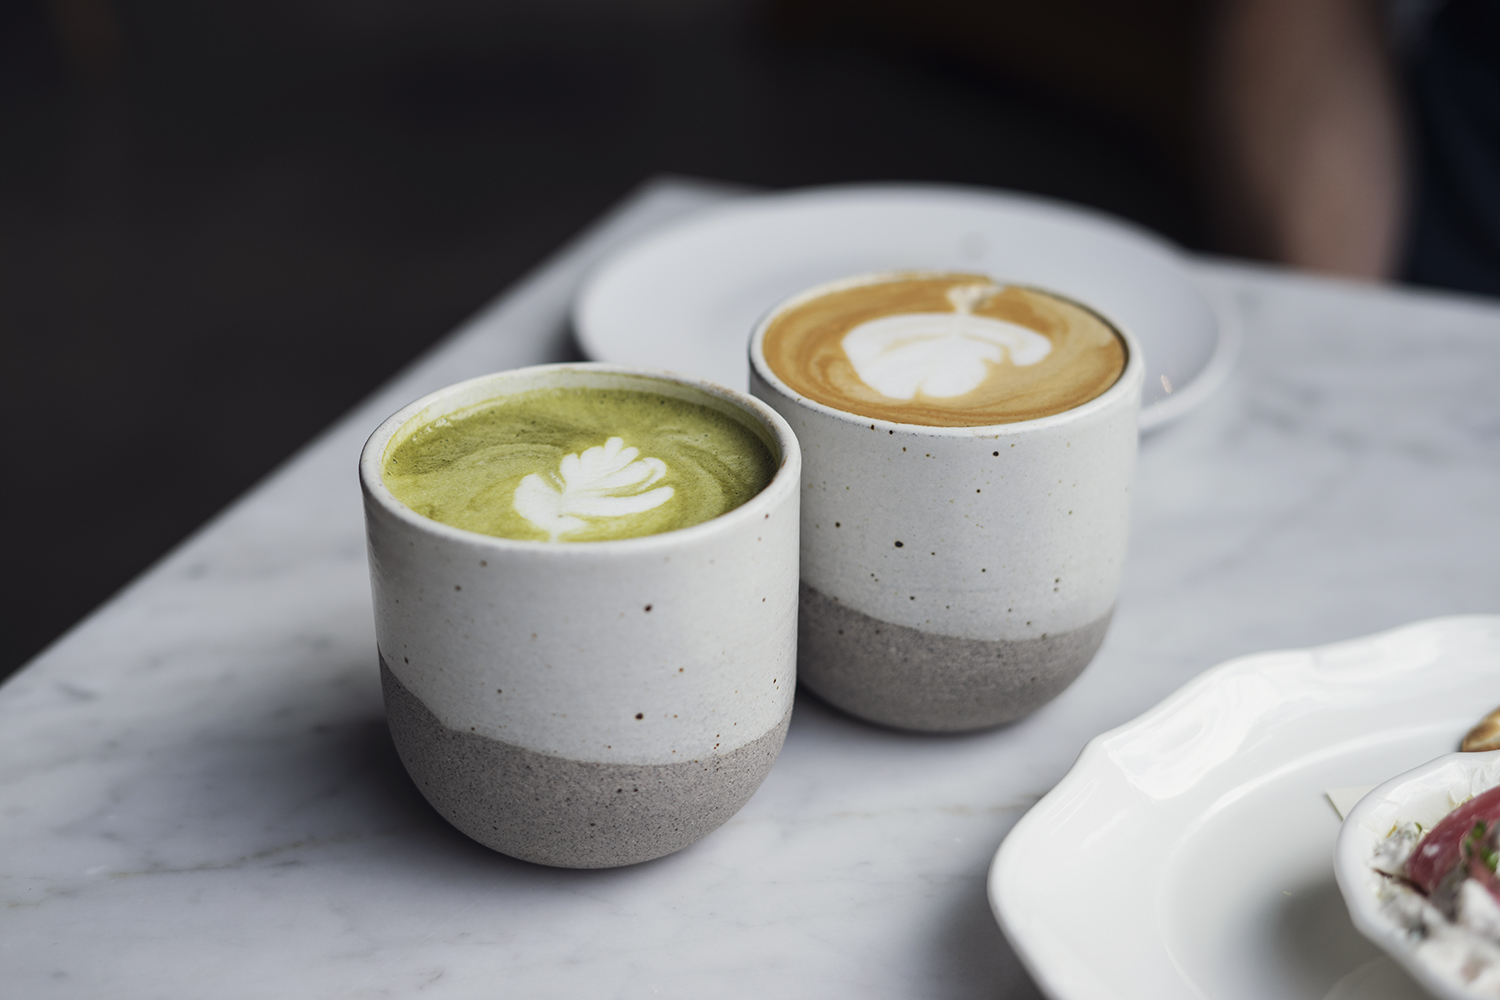 01hayden-matcha-latte-drinks